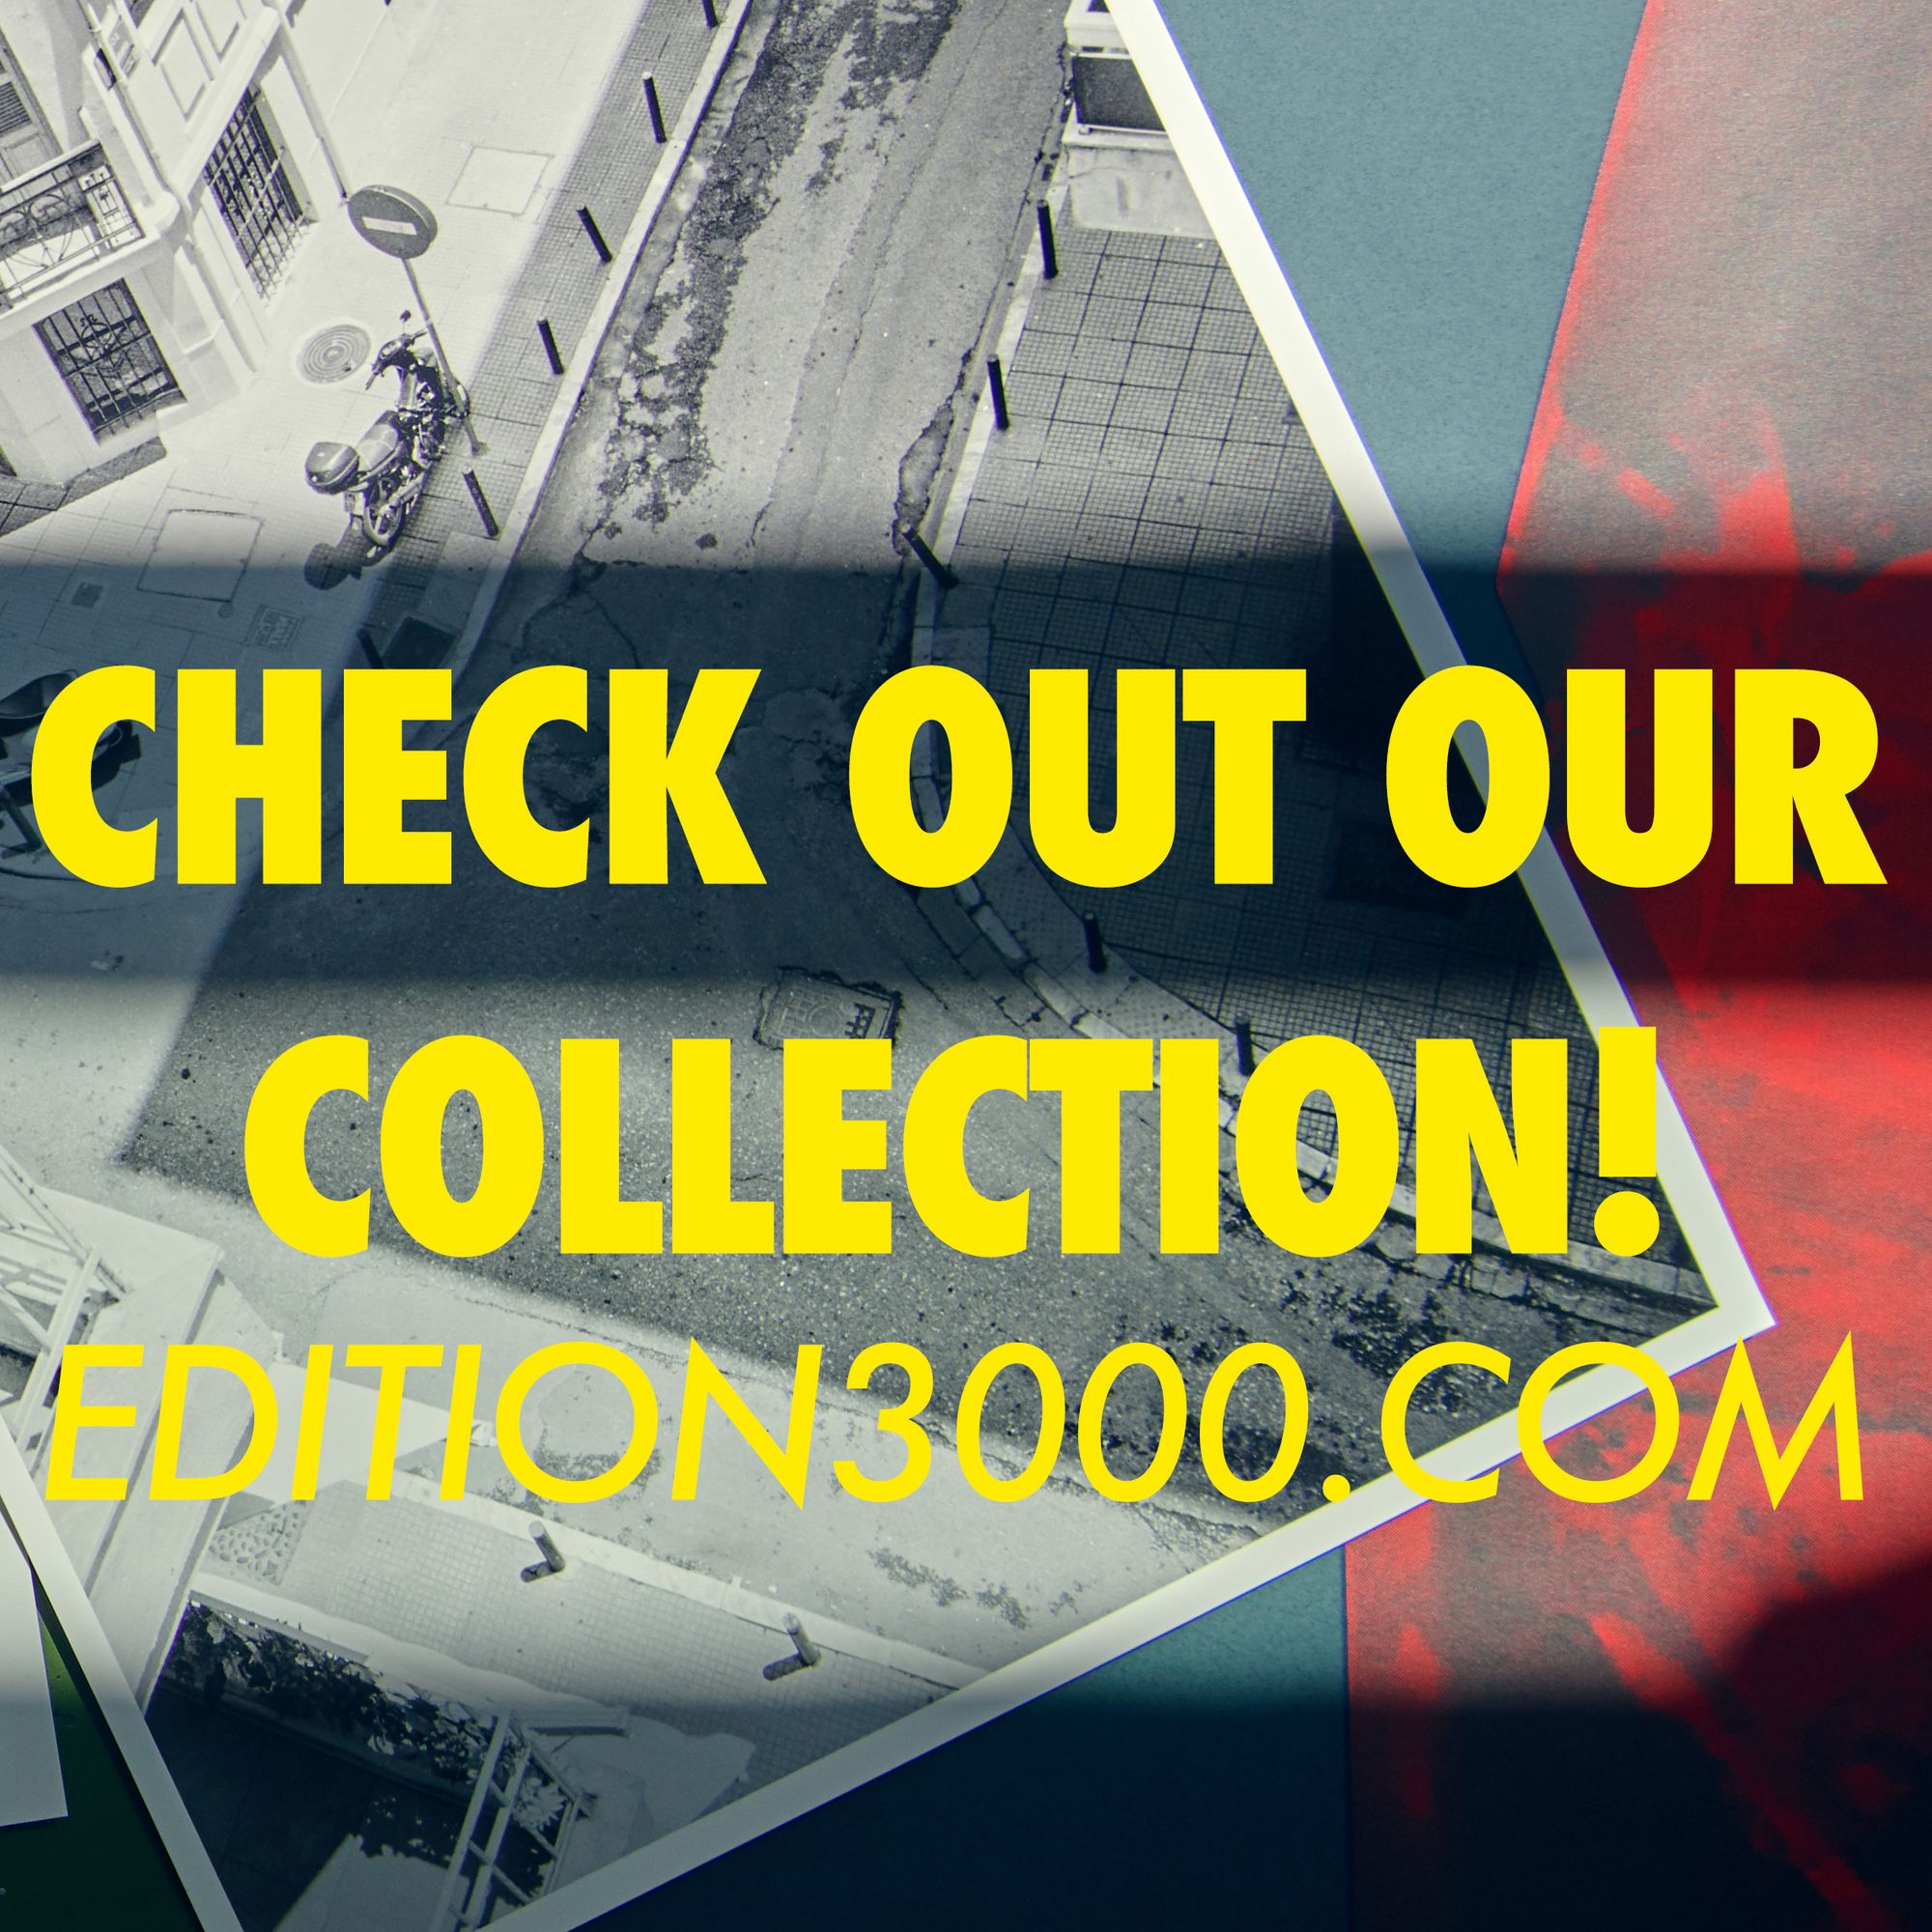 Check out our prints online! We release new prints soon... . . . . . . . #edition3000 #edition3000 #posterprint #print #poster #wallart #readytohang #easytoorder #onlinegallery #buyposter #buyposteronline #buyart #artprint #wallposter #wallphoto #photoposter #photographyposter #photoart #artphotography #photographyart #artphoto #buyprint #posterforsale #printforsale #artforsale #photogaphyforsale #art3000 #photo3000 #posterart #beautifulposter